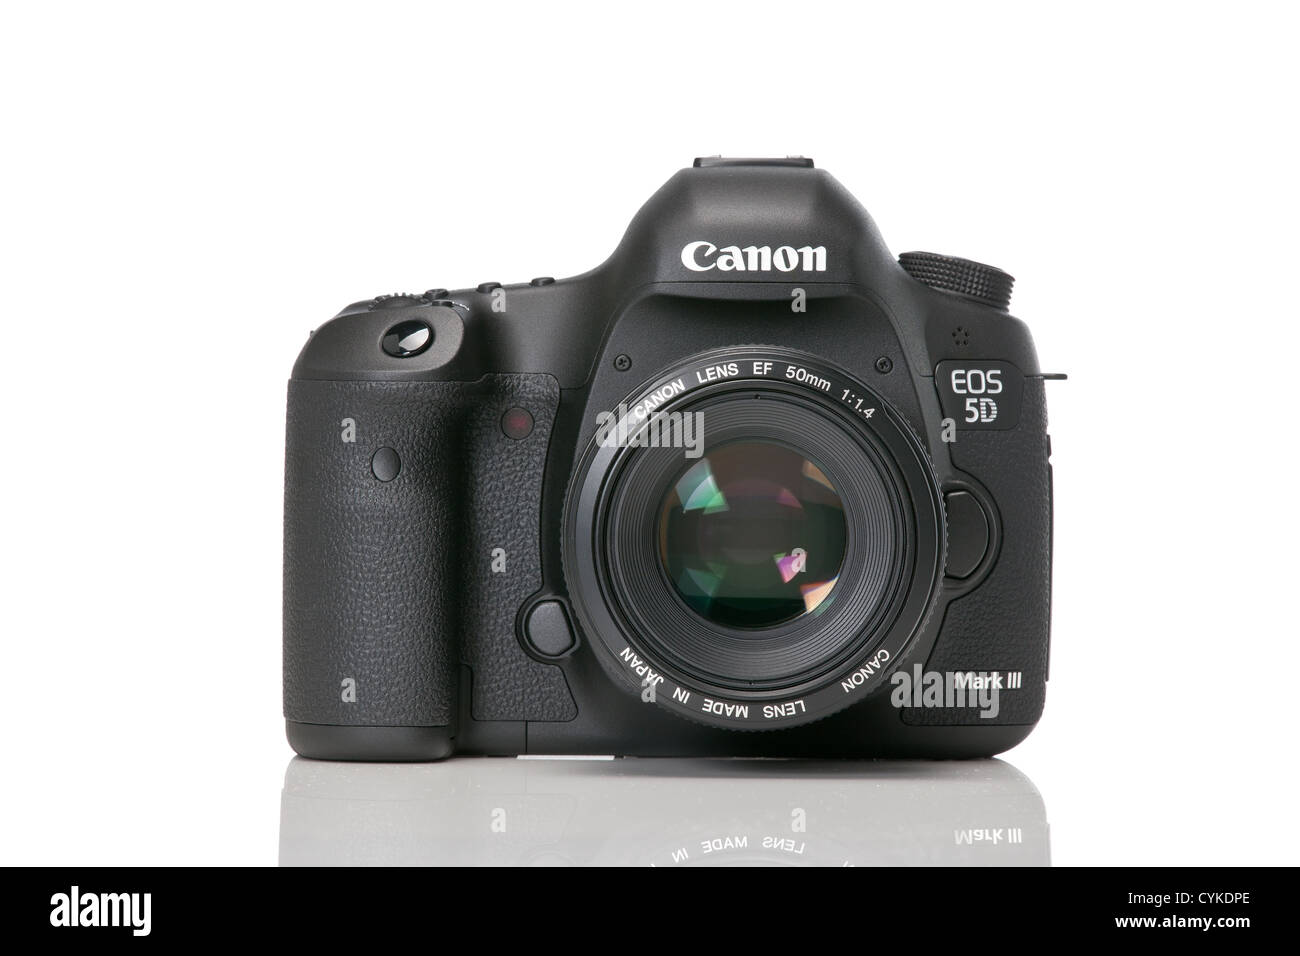 5d mk iii 3 with 50mm lens on the dslr against a white background. - Stock Image